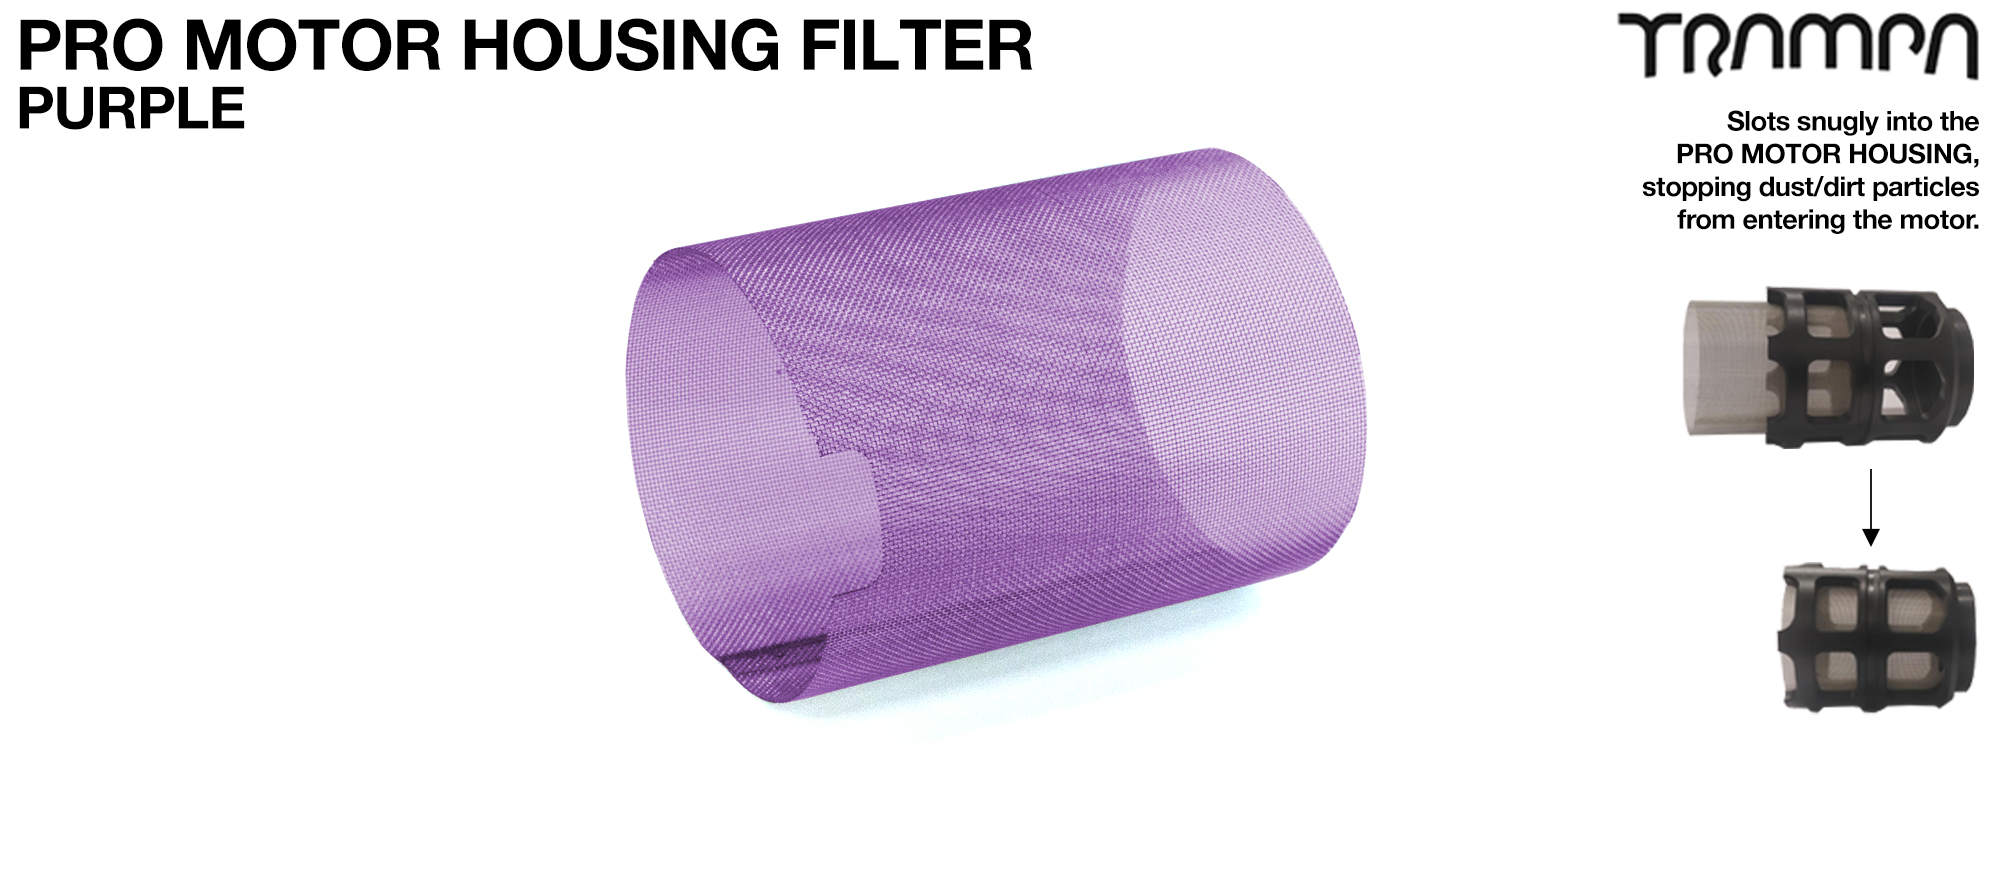 Motor Protection Cover MESH FILTER - PURPLE